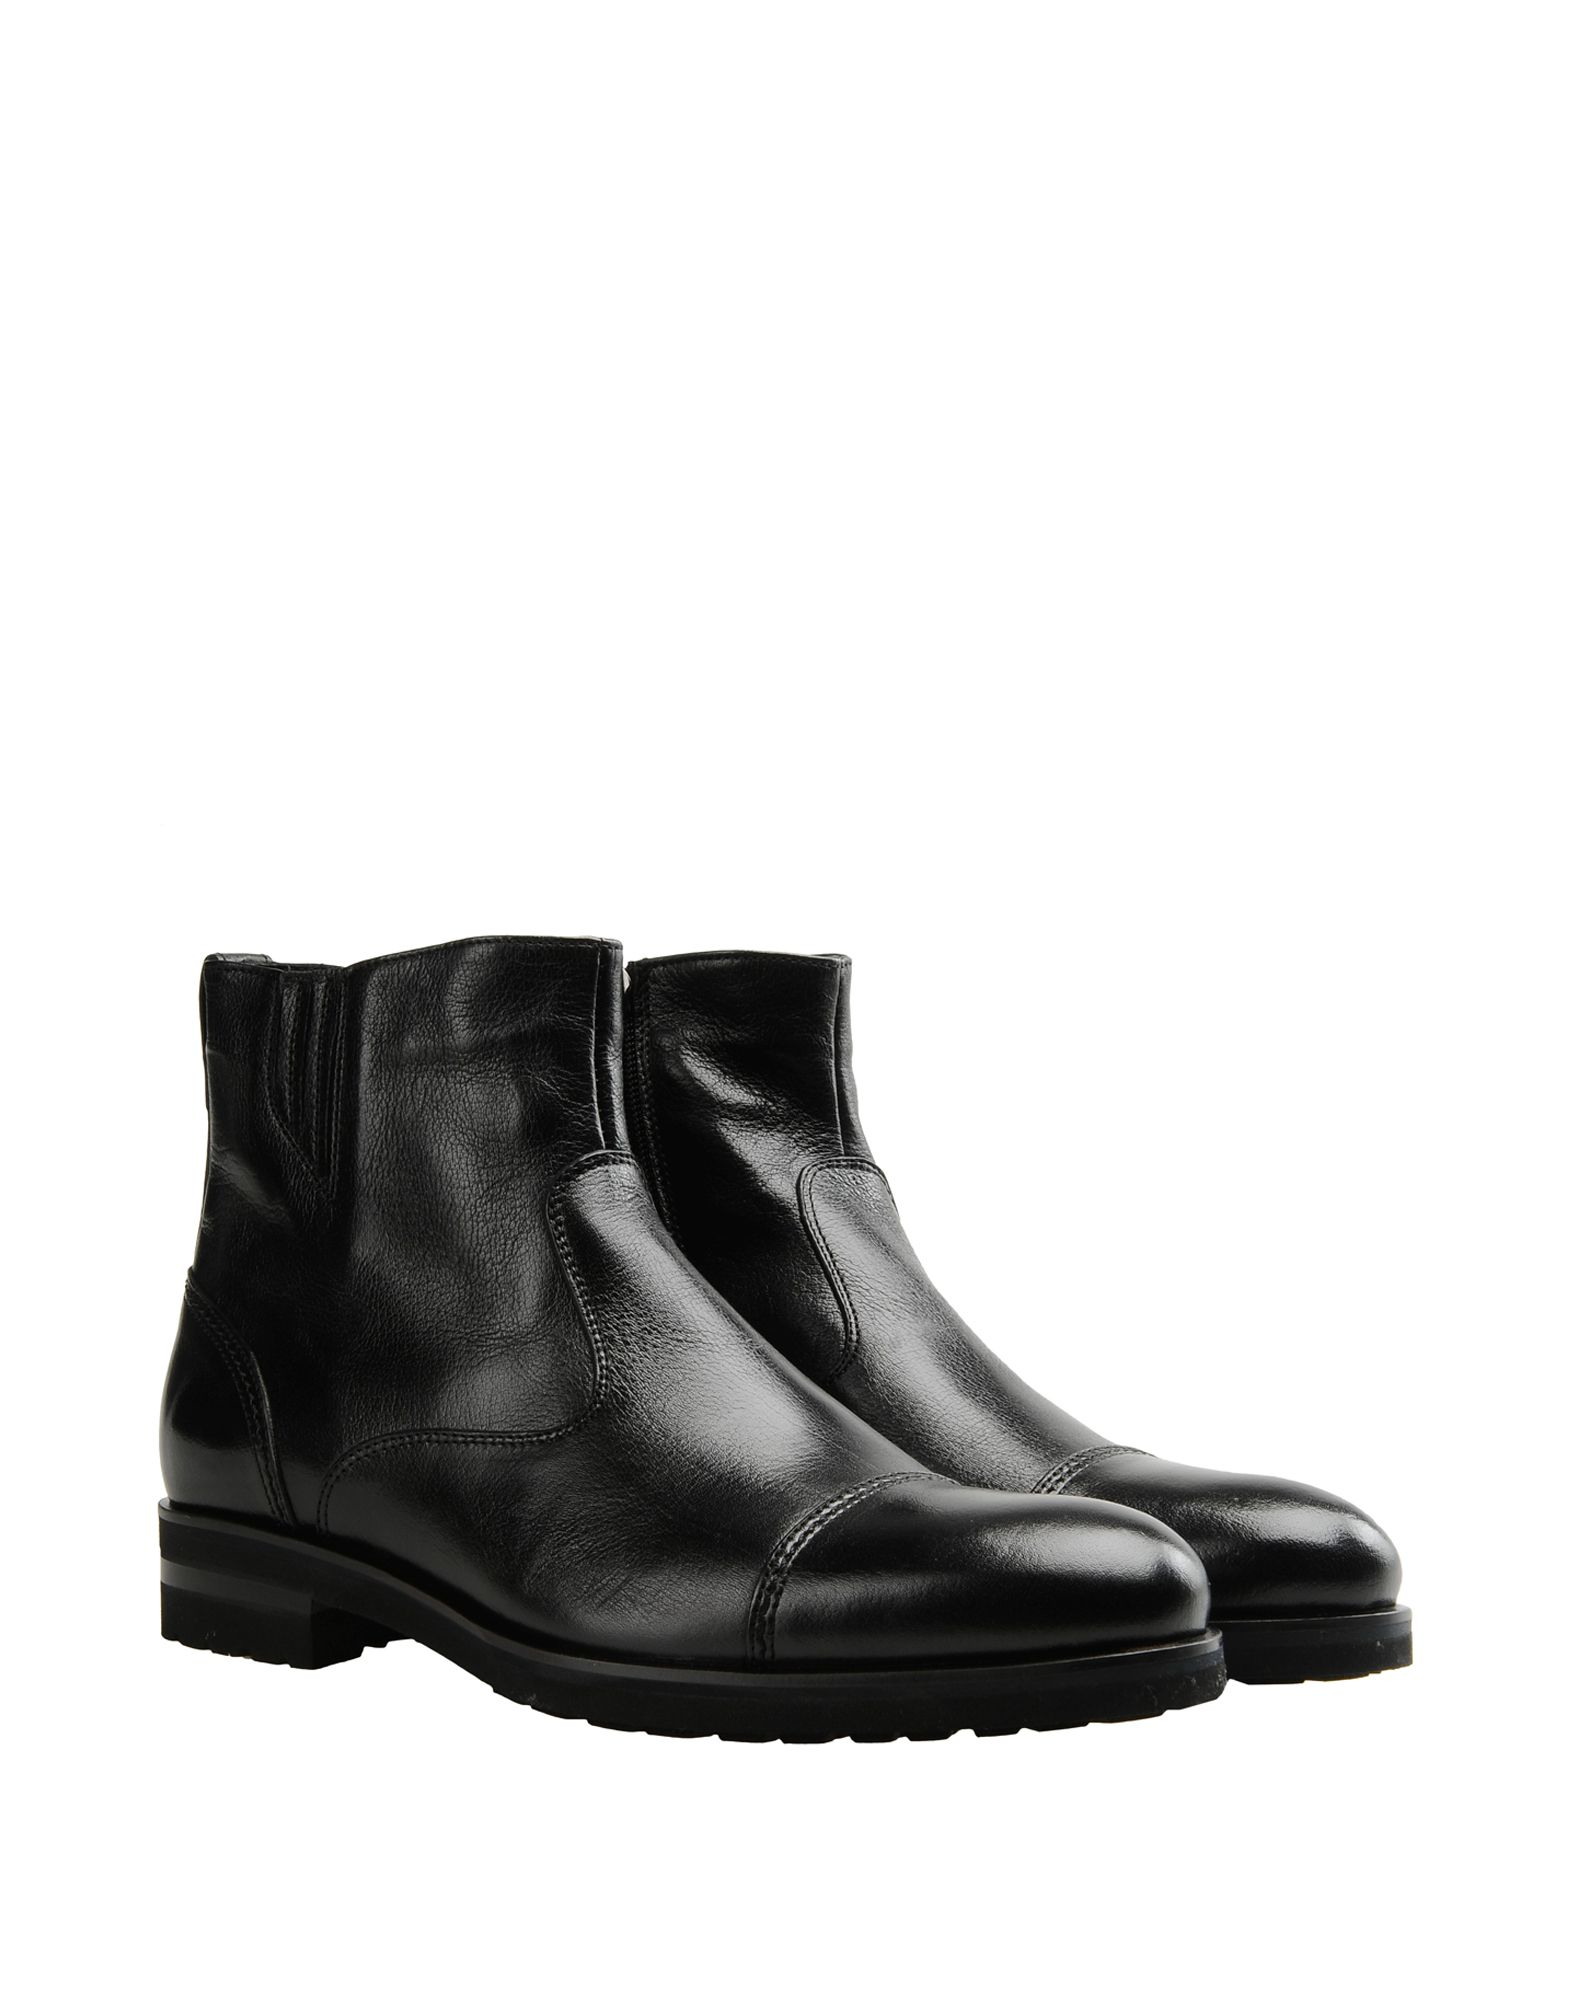 CARLO PAZOLINI Ankle boot Black Men